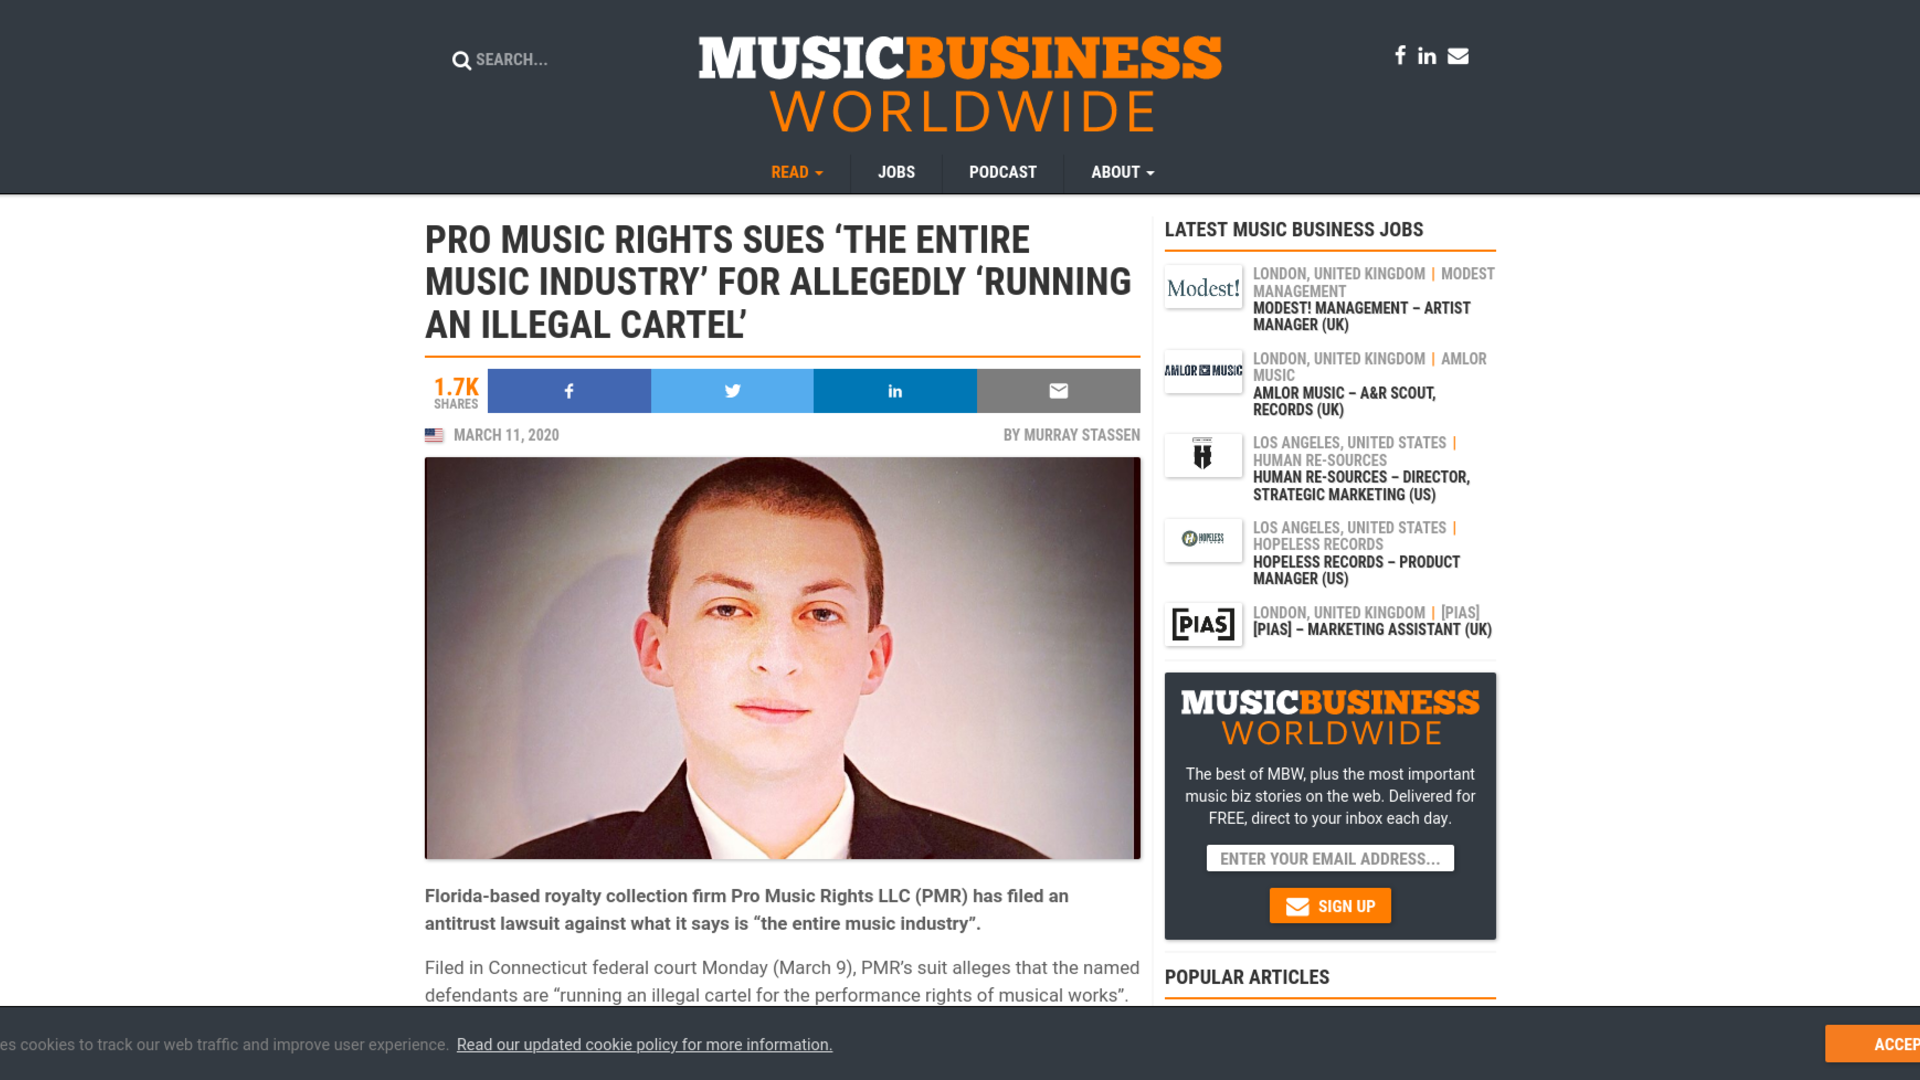 Fairness Rocks News Pro Music Rights sues 'the entire music industry' for allegedly 'running an illegal cartel'